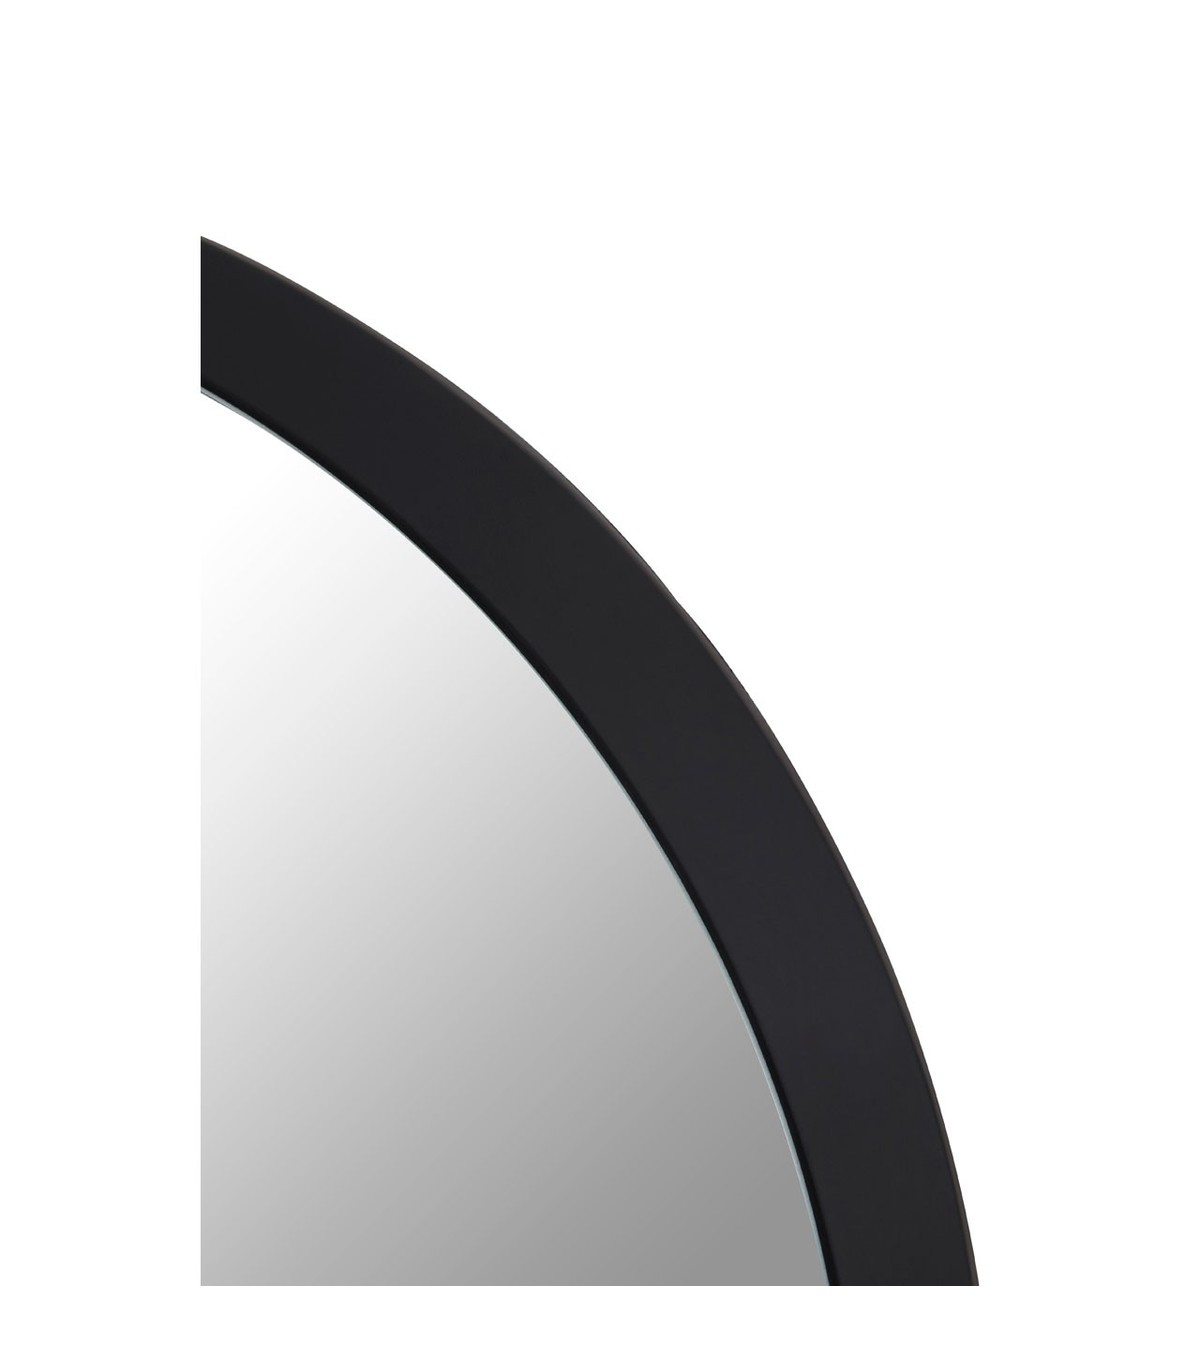 Round Black Wall Mirrors Pertaining To Well Known Large Round Black Wall Mirror (View 16 of 20)